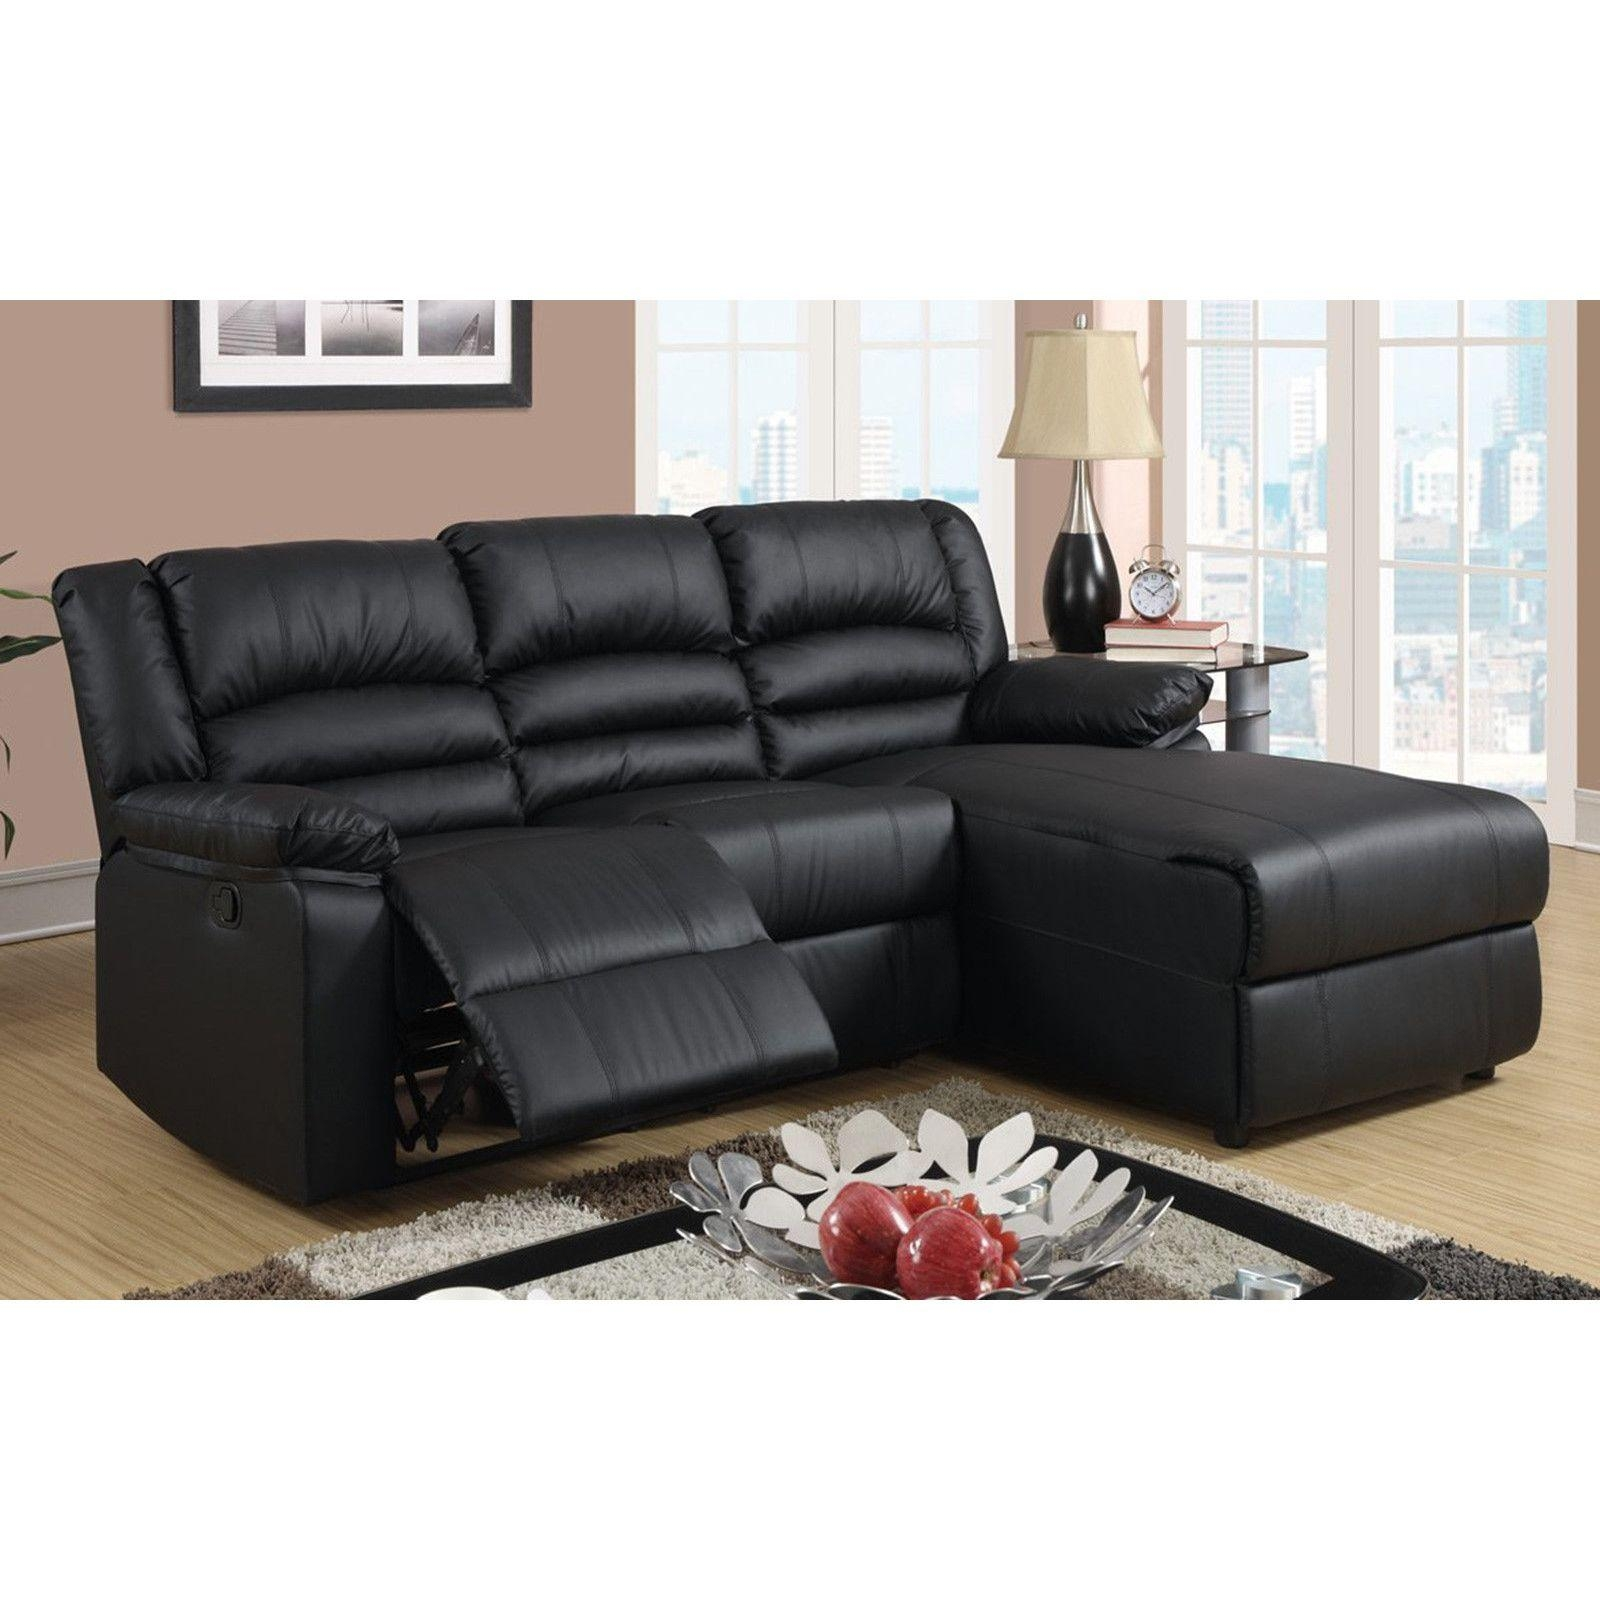 Furniture: Jedd Fabric Reclining Sectional Sofa | Sectional In Curved Sectional Sofa With Recliner (View 11 of 15)